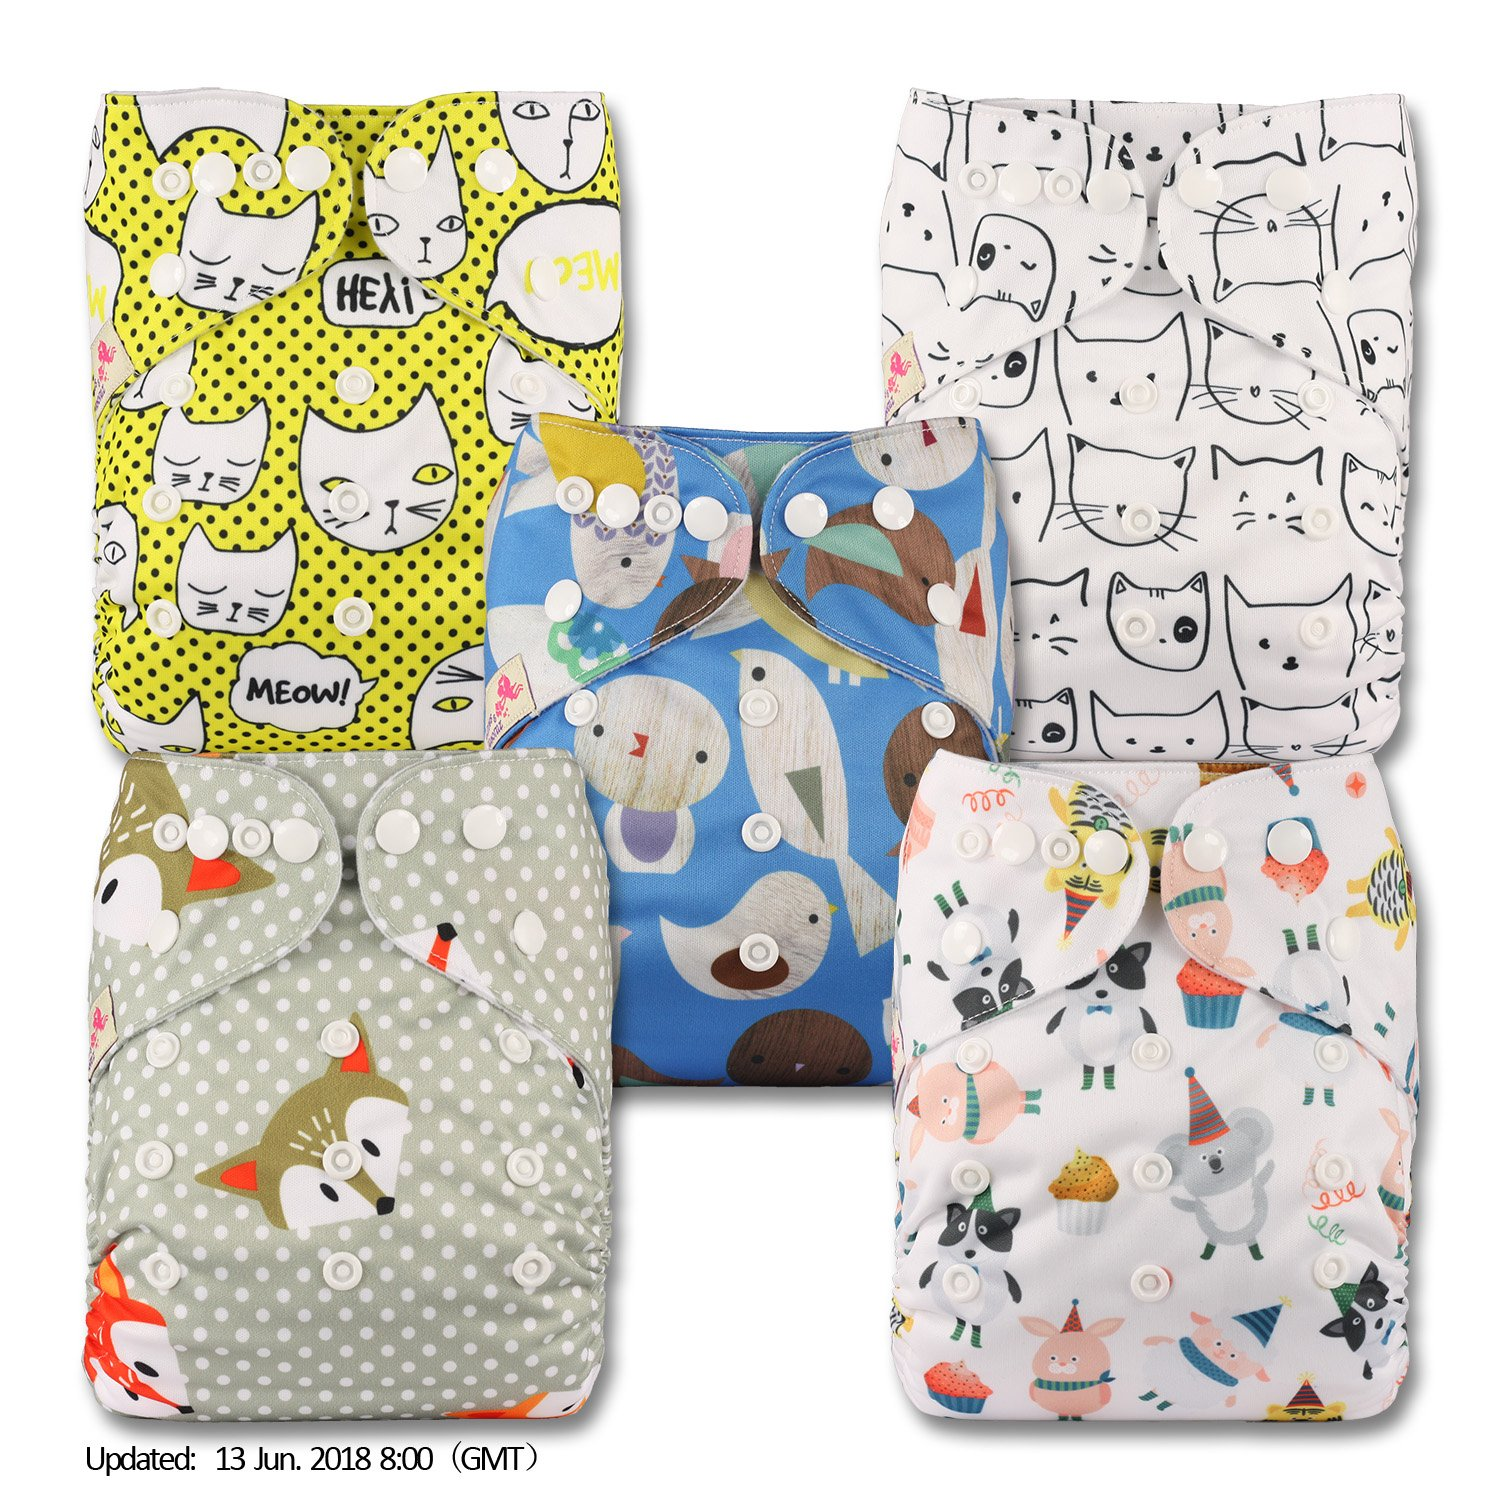 LittleBloom, Reusable Pocket Cloth Nappy, Fastener: Popper, Set of 5, Patterns 508, With 5 Bamboo Inserts Littles & Bloomz